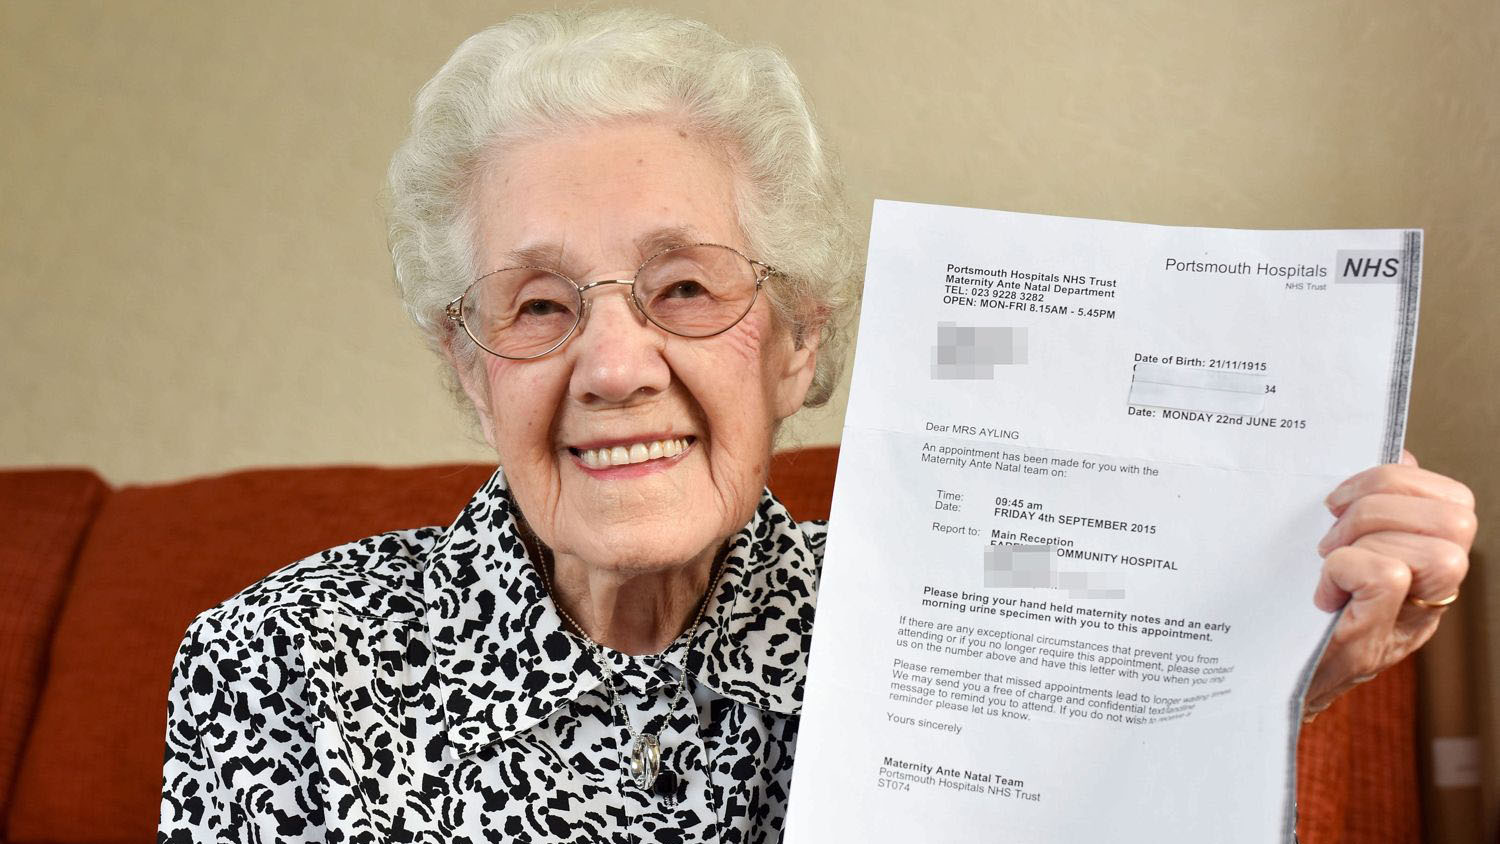 Great-grandmother, who is nearly 100, told she's pregnant